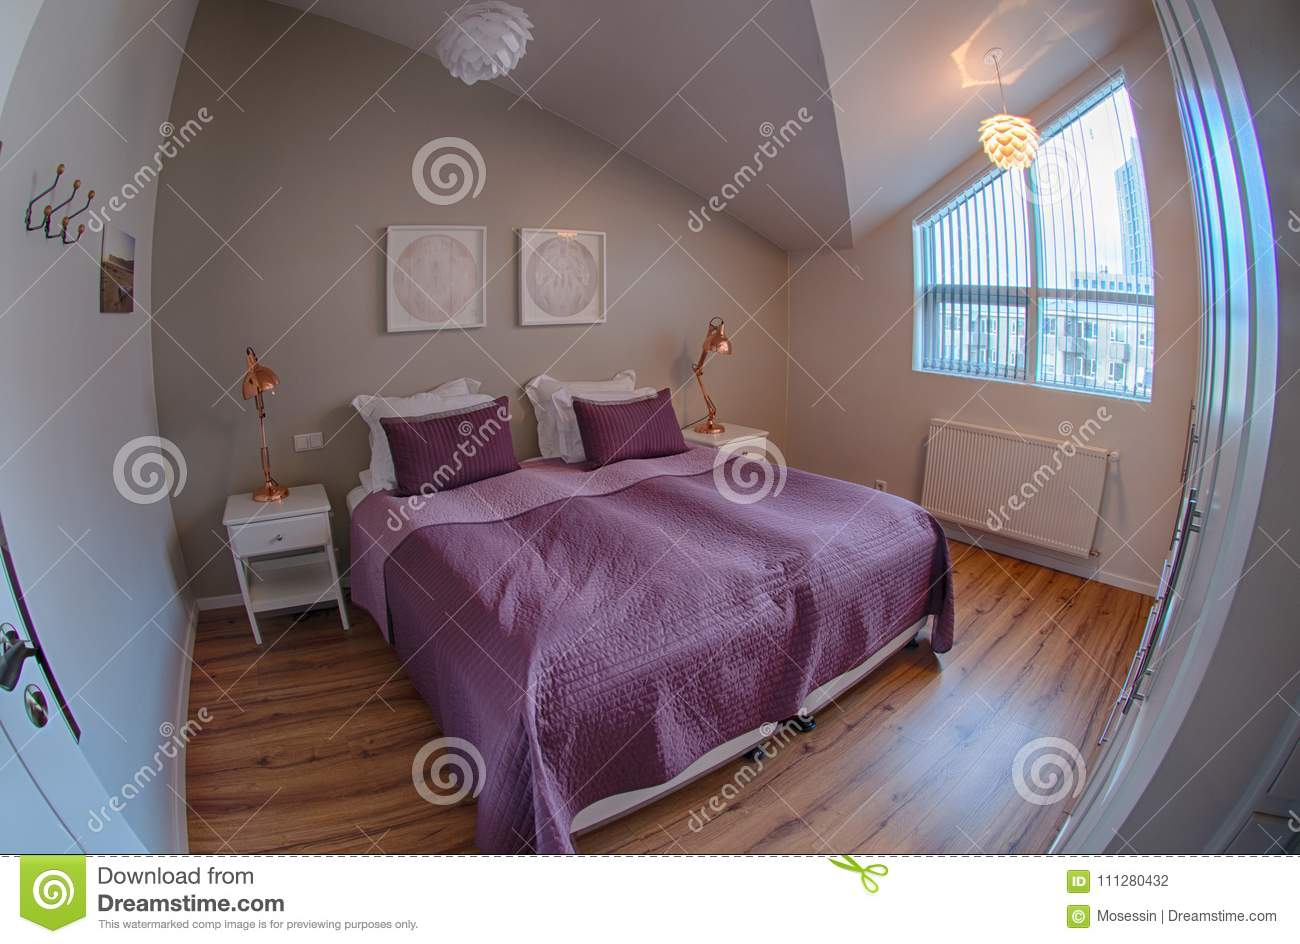 Service Apartment Cozy Bedroom Editorial Photography Image Of Romantic House 111280432